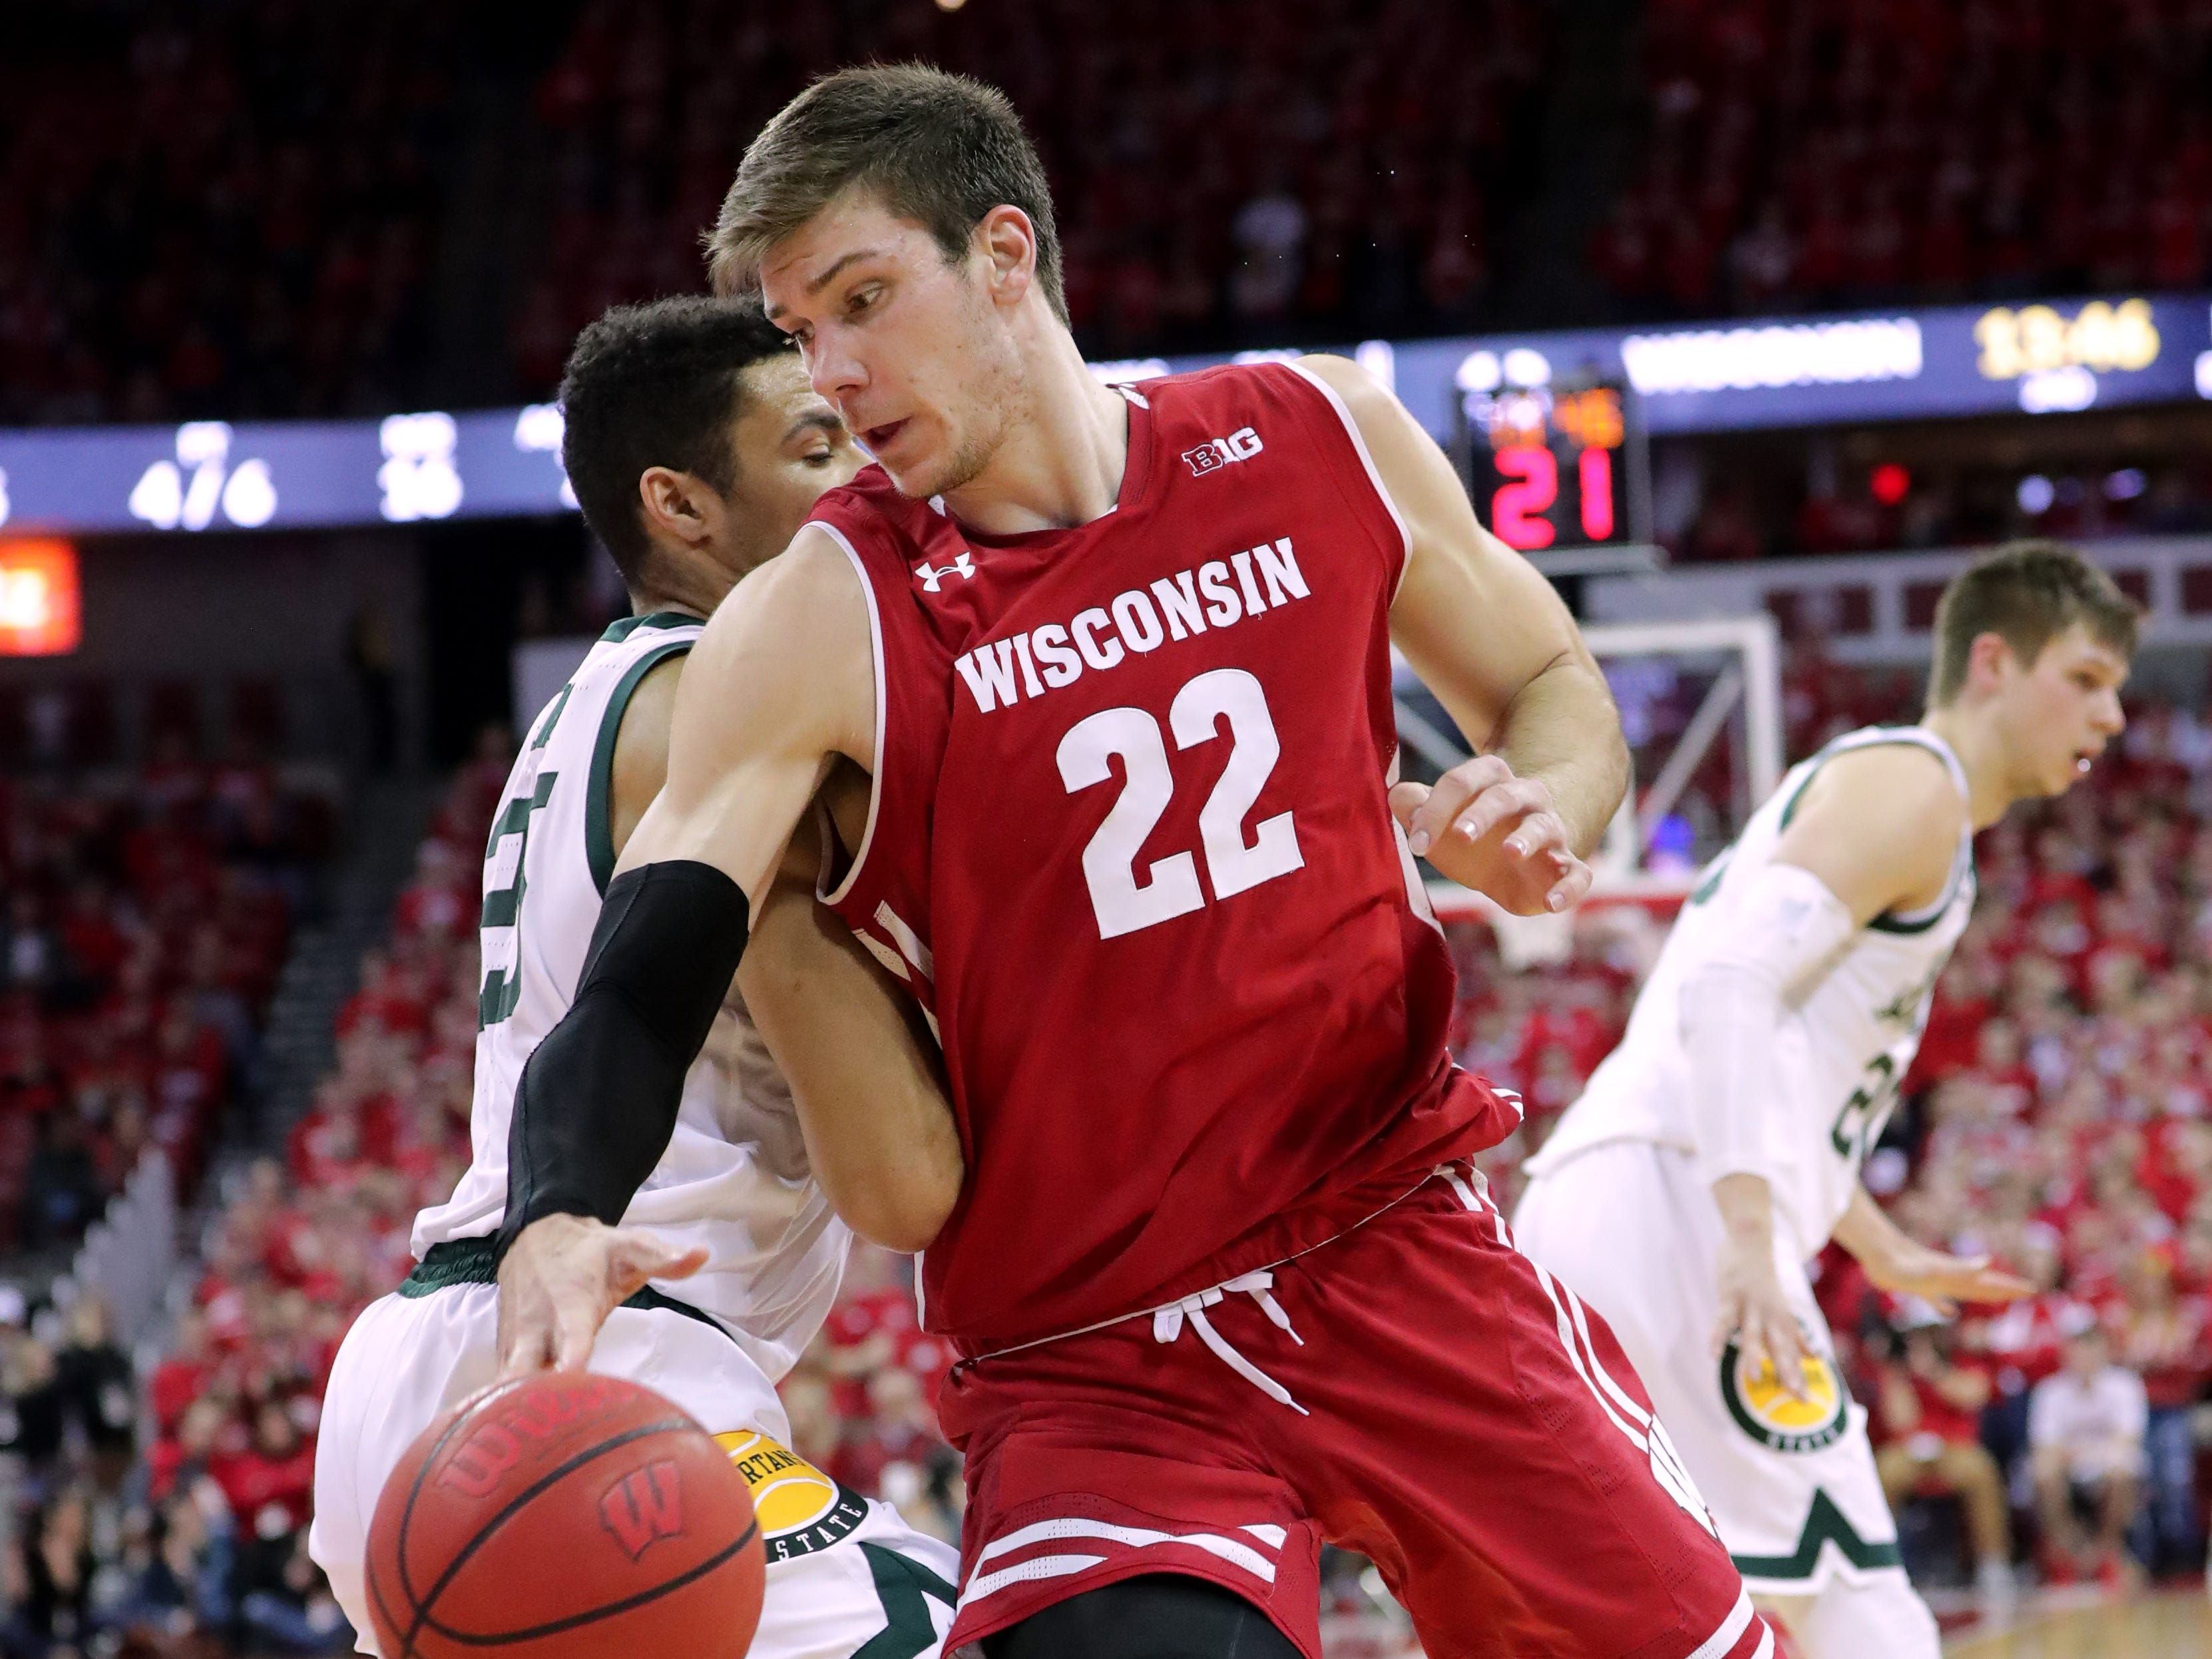 Michigan State forward Kenny Goins fouls Wisconsin forward Ethan Happ on his way to the basket.